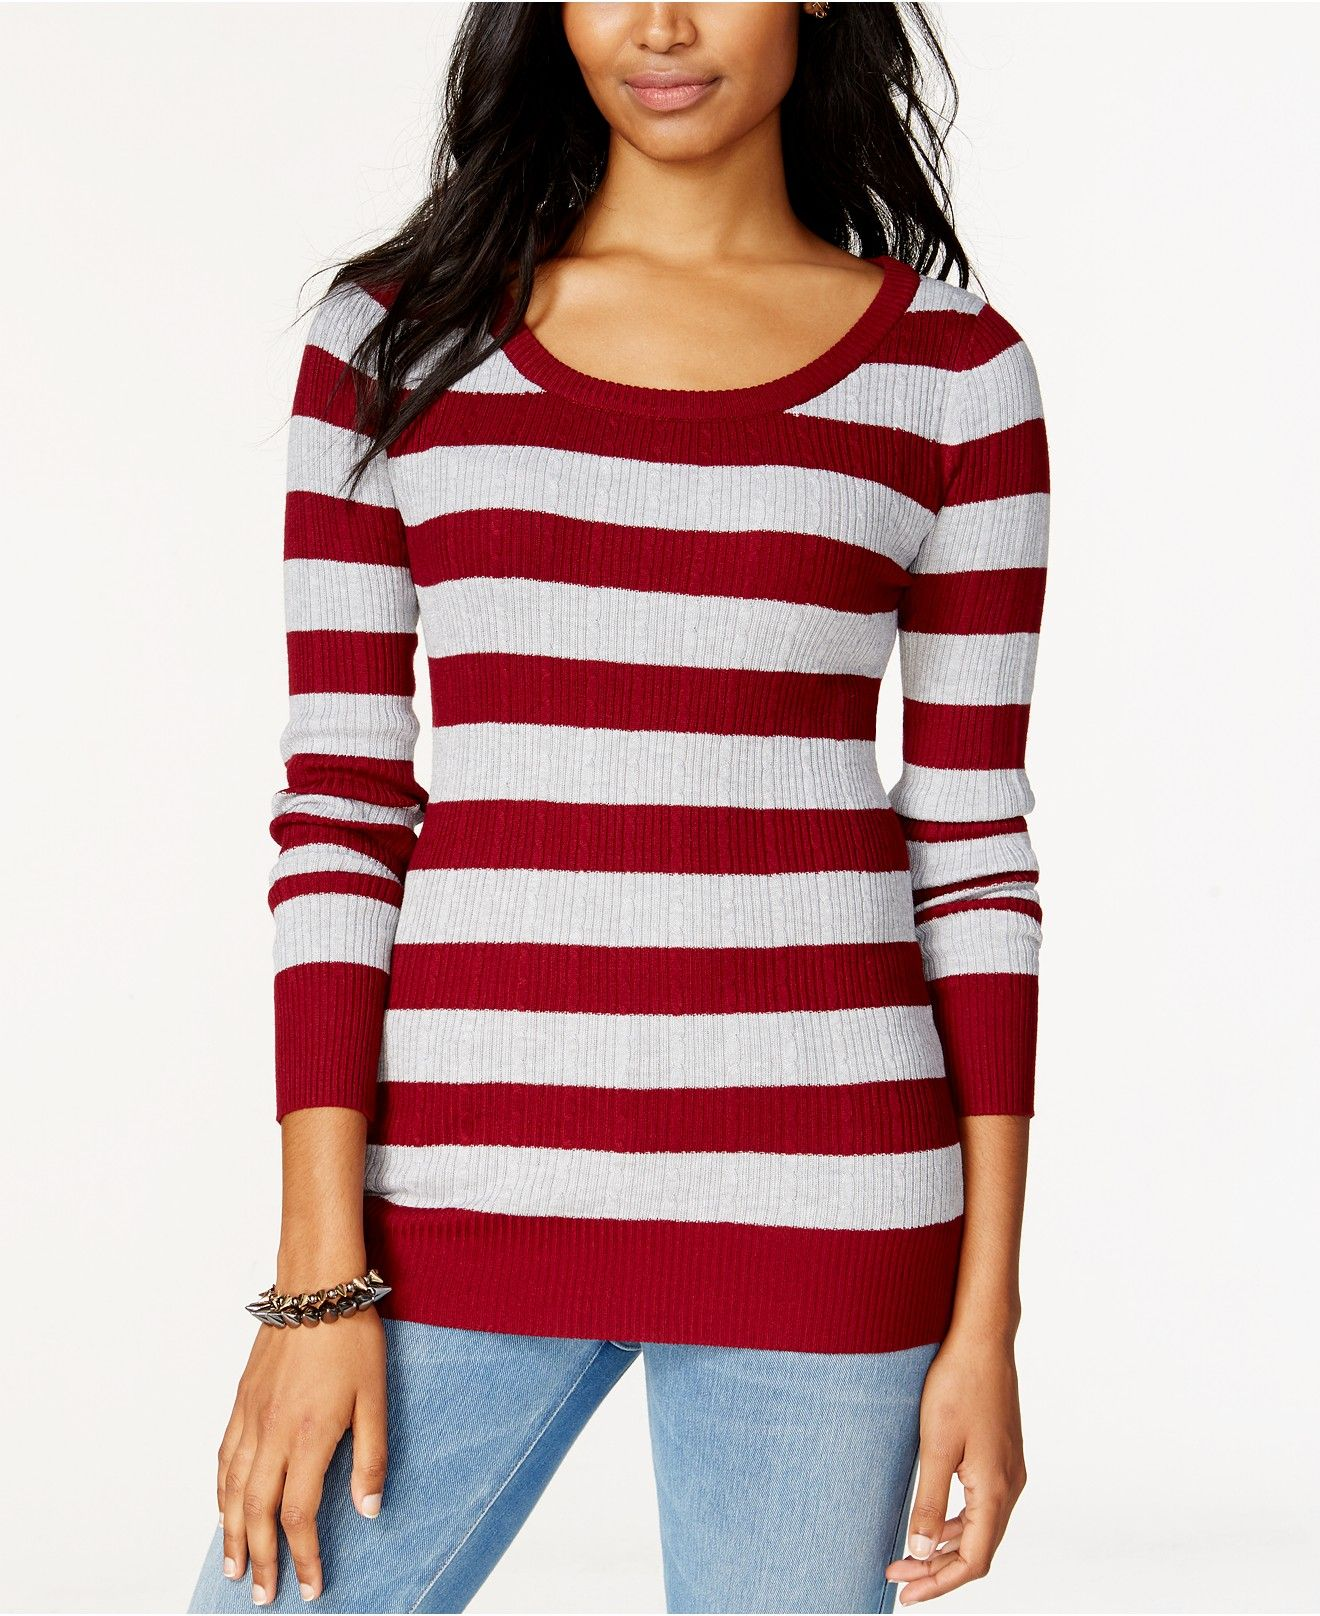 Pink Rose Juniors' Striped Rib-Knit Pullover Sweater - Juniors ...